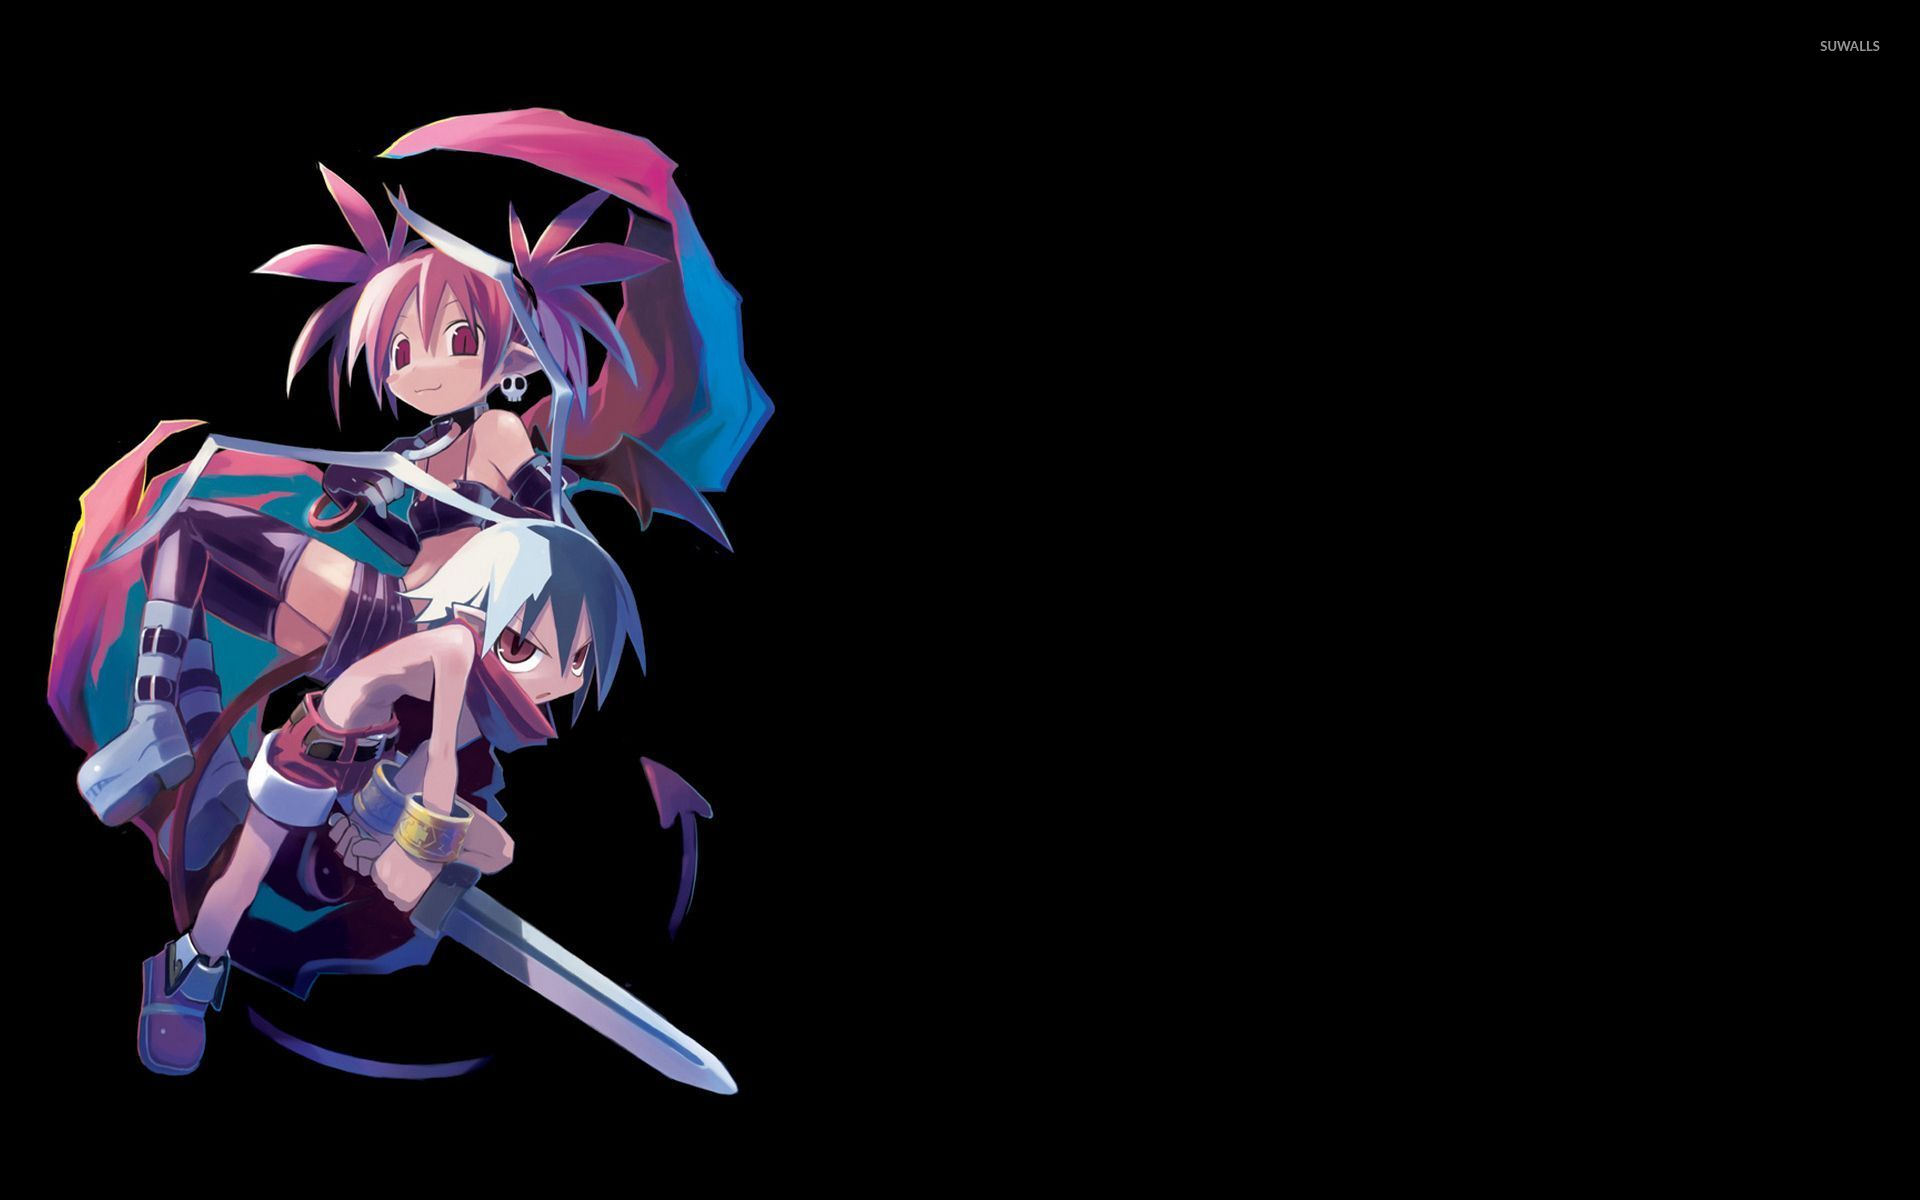 Disgaea wallpaper - Game wallpapers - #47013